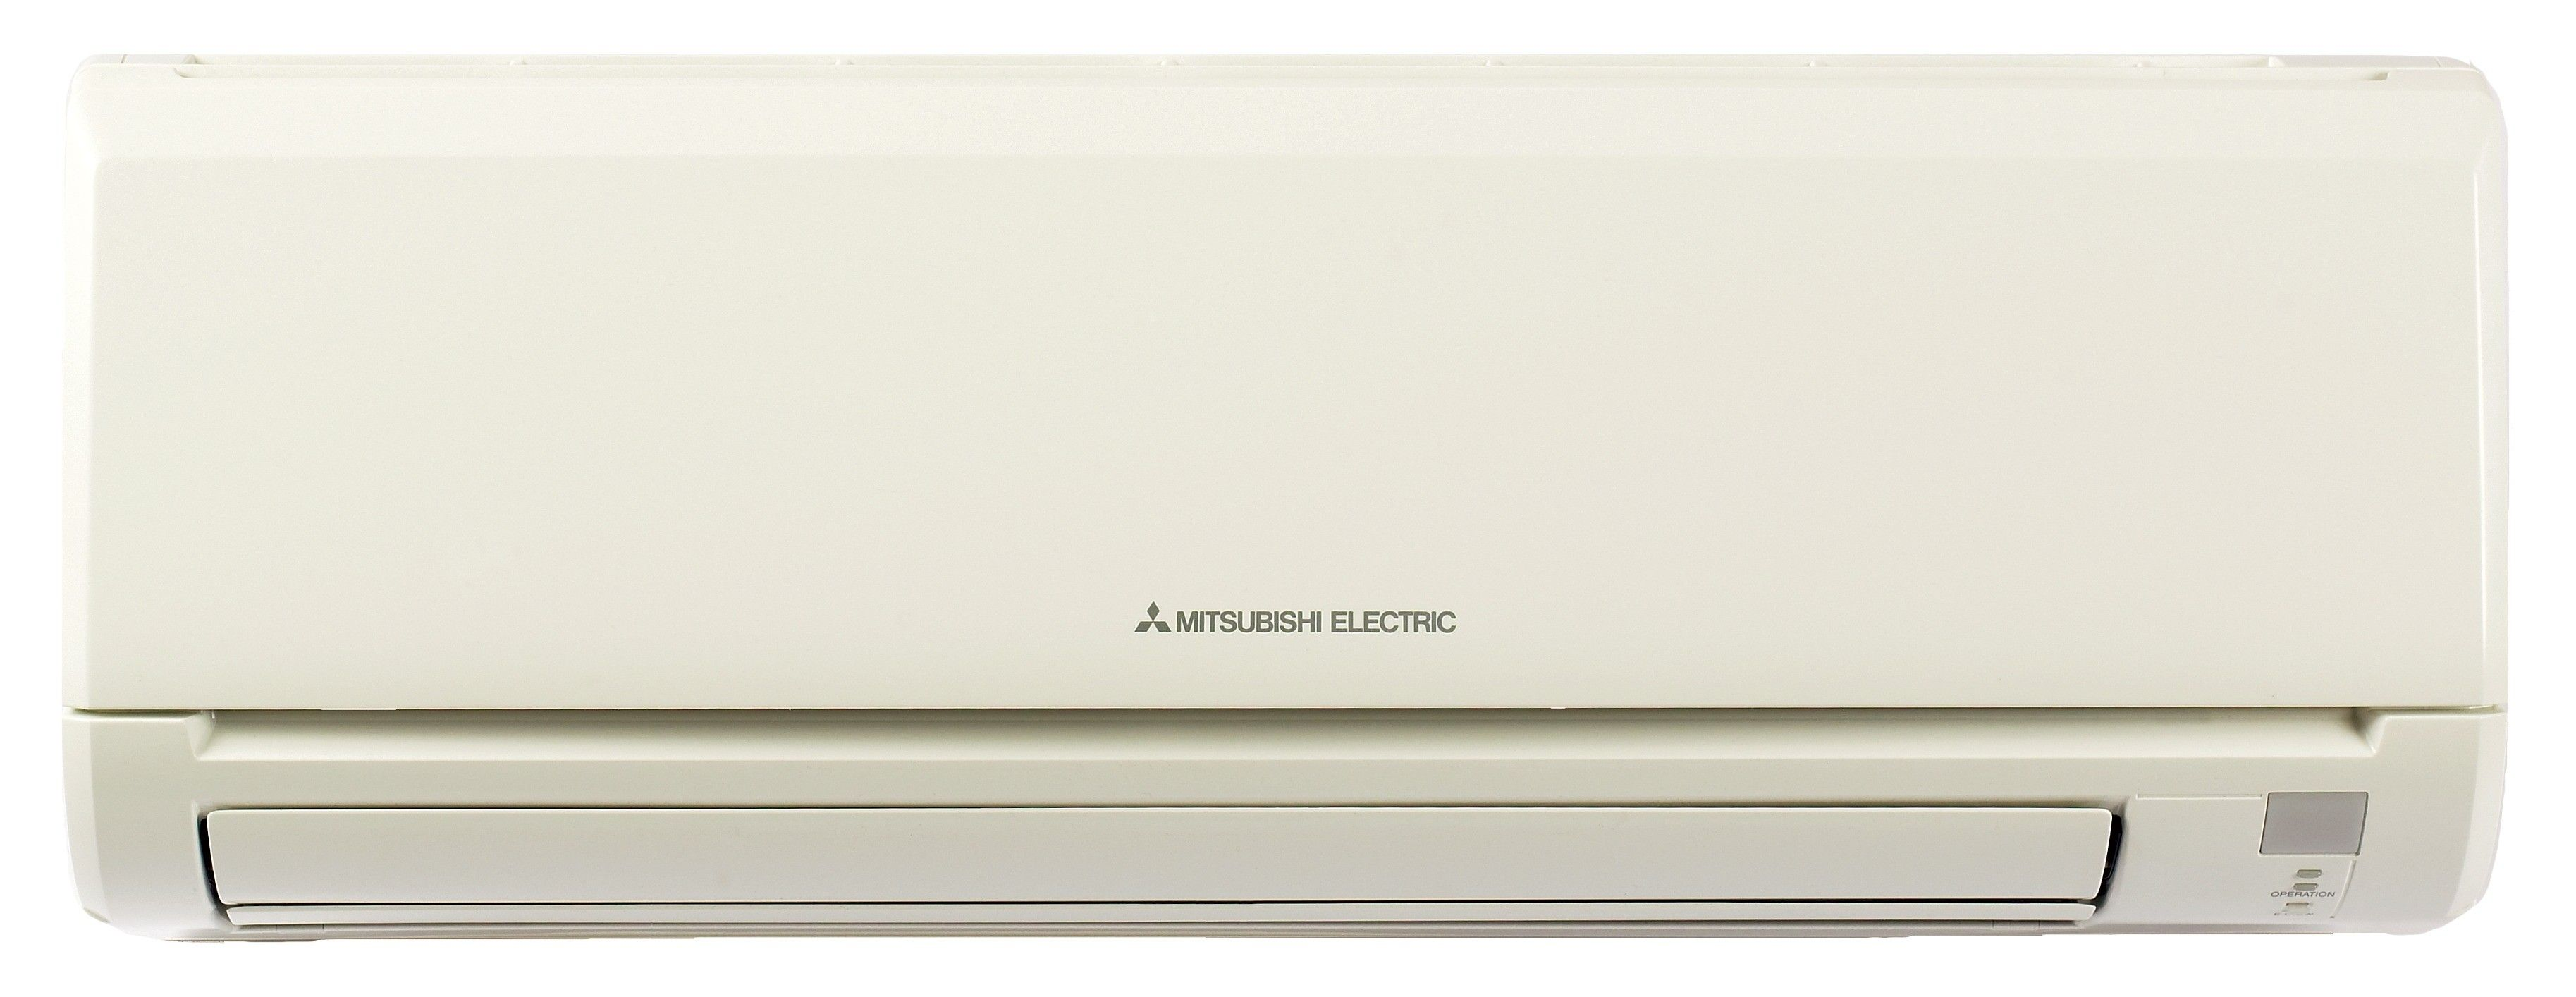 24K BTU Mitsubishi MSZGL Wall-Mounted Heat Pump Indoor Unit